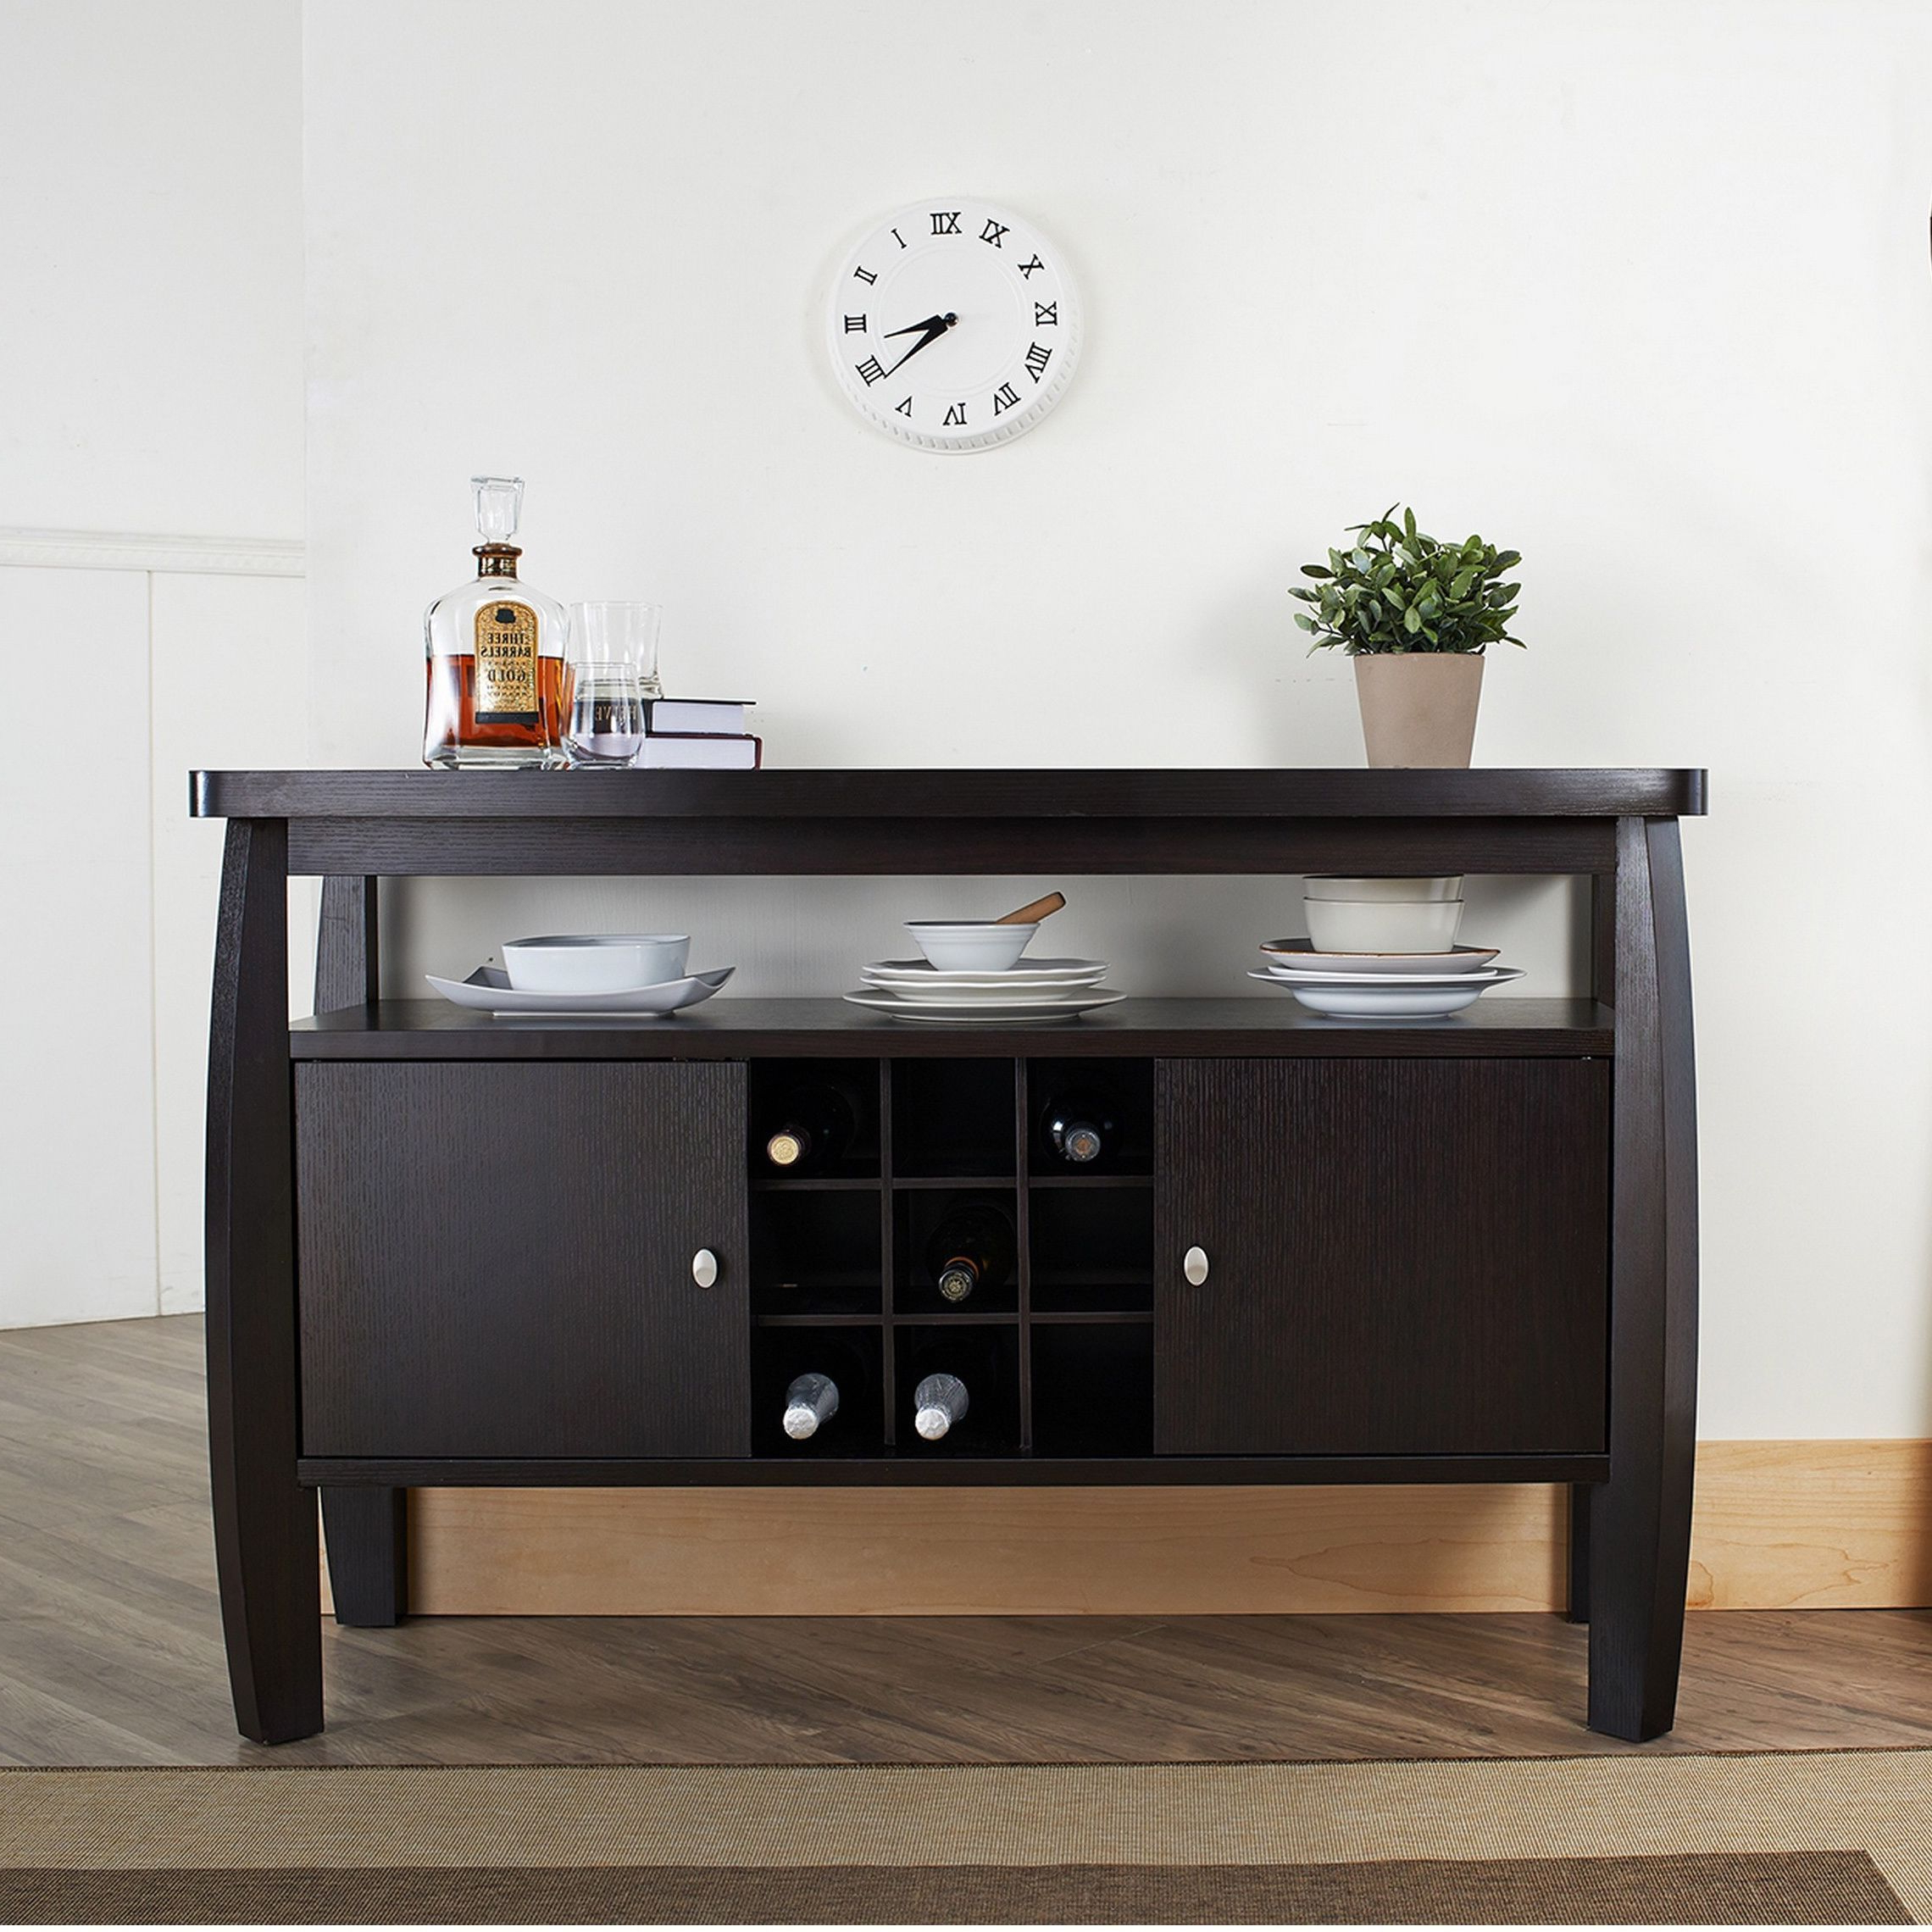 Add An Elegant Touch To Any Room With This Durable Espresso Pertaining To Contemporary Espresso Dining Buffets (View 1 of 20)